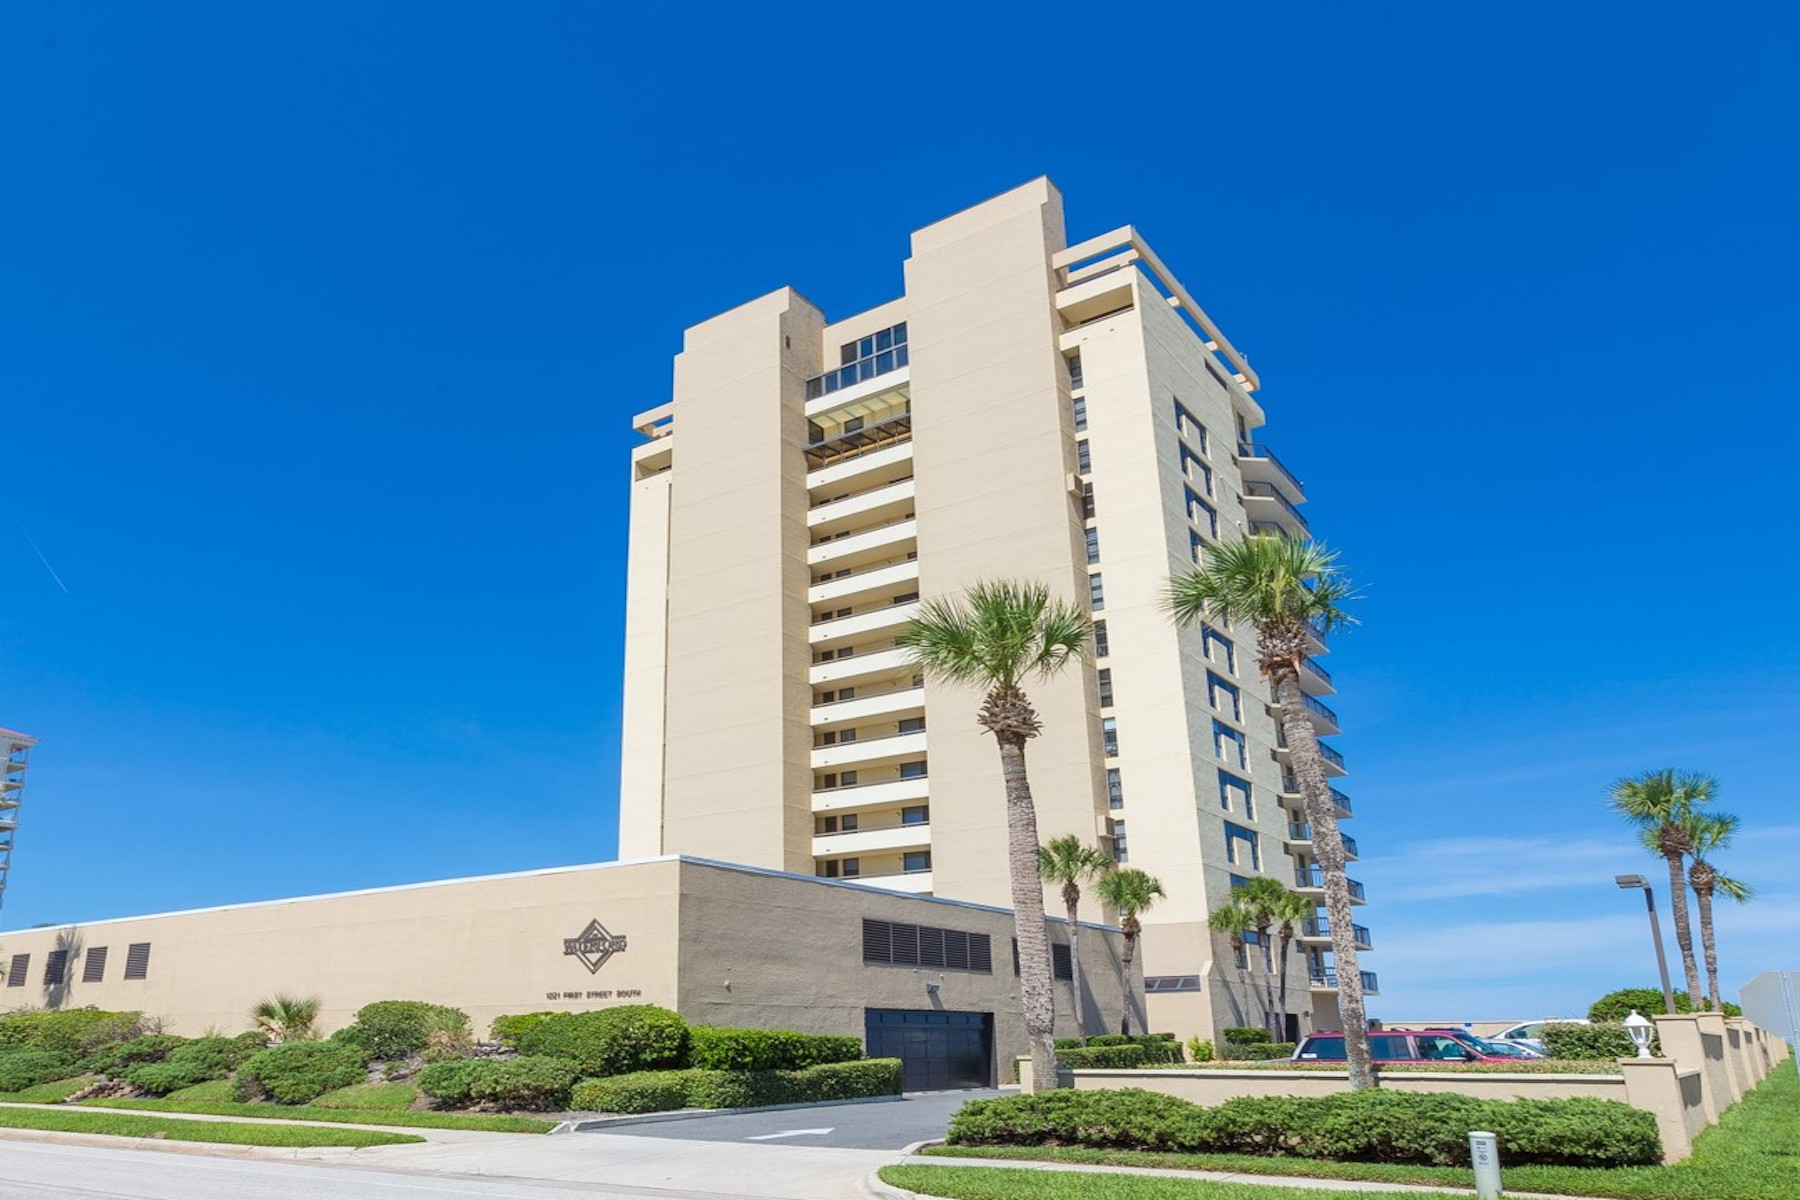 Condominium for Sale at The Waterford 1221 1st St. South 4A Jacksonville, Florida, 32250 United States